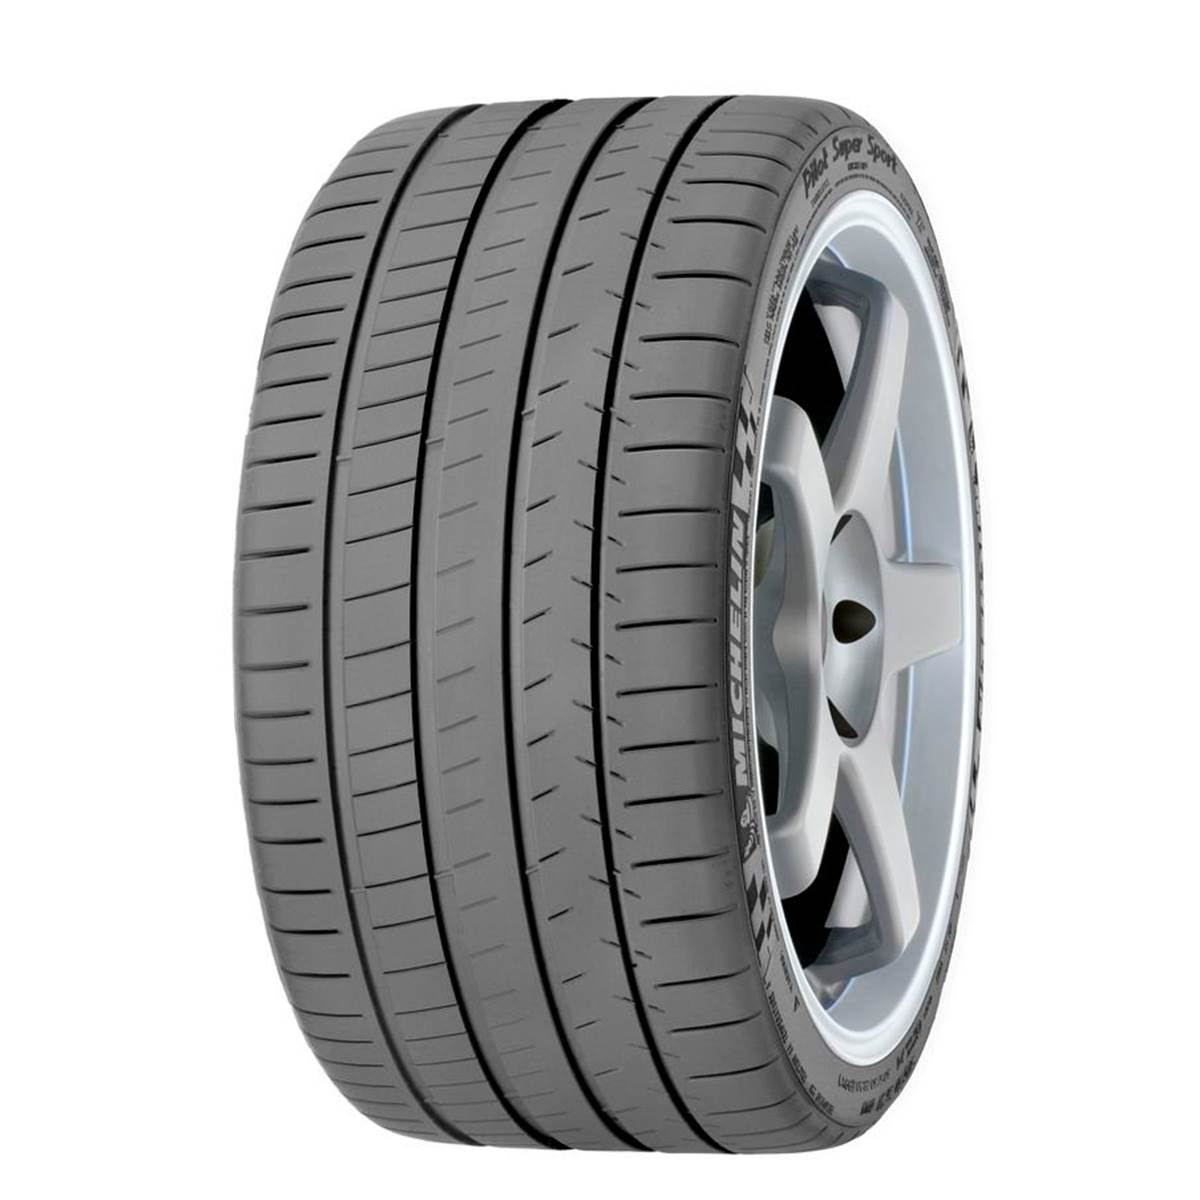 Pneu Michelin 205/45R17 88Y Pilot Super Sport XL